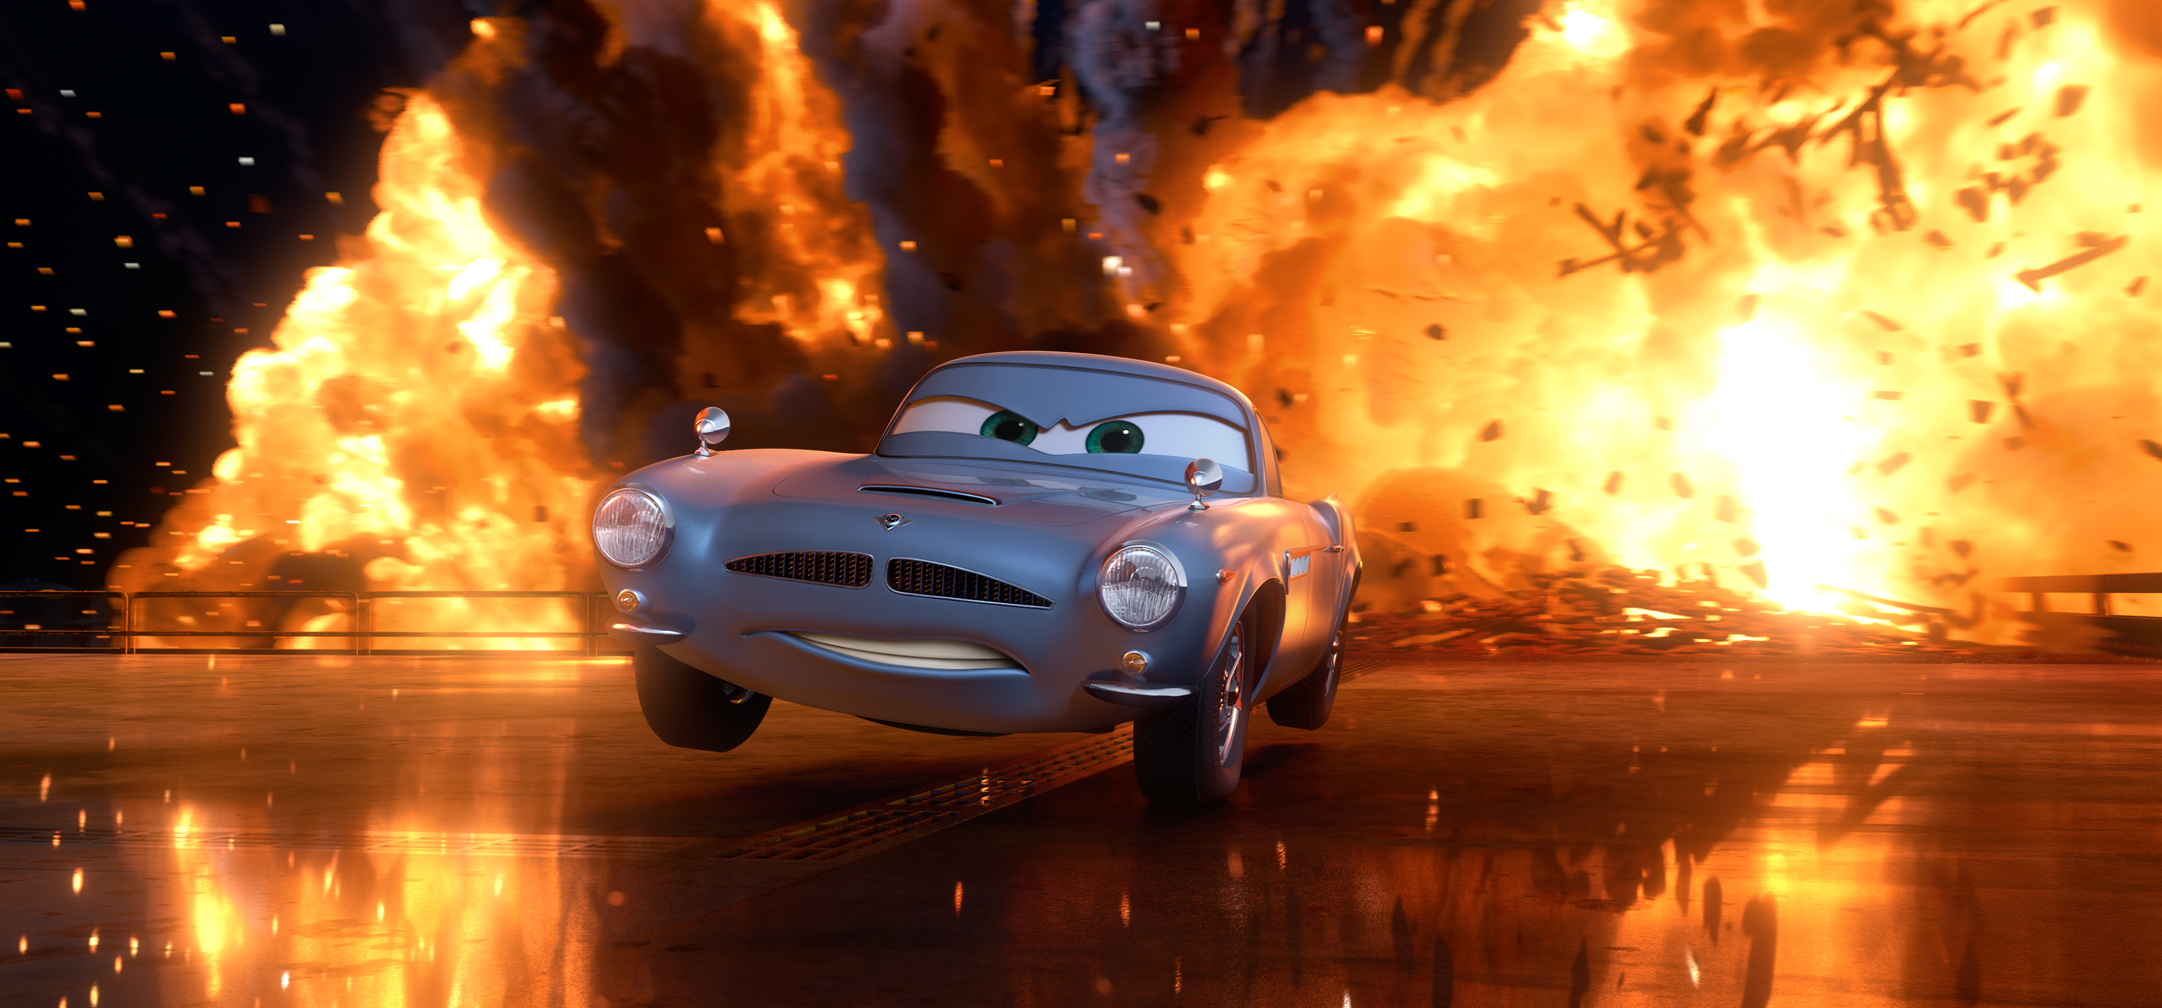 Film Review: Cars 2